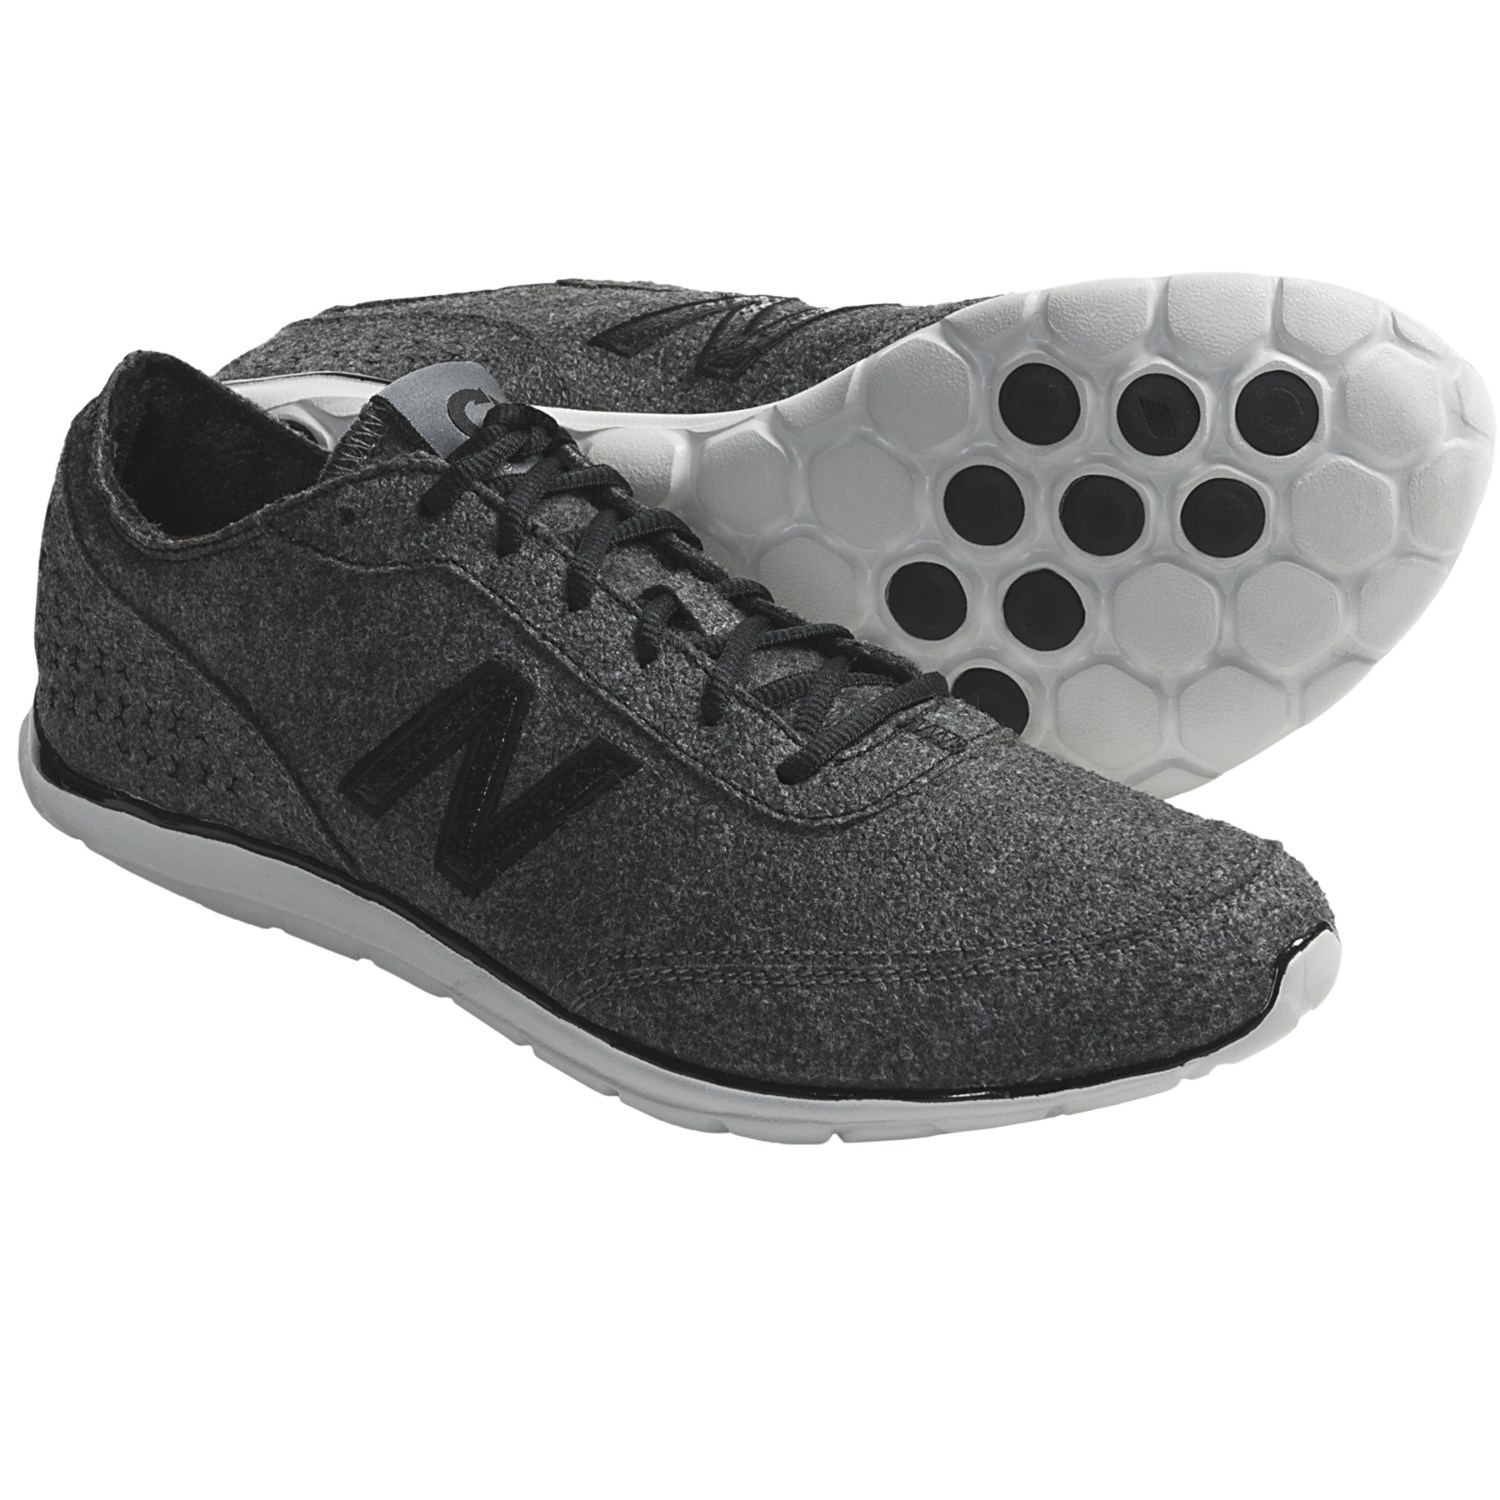 New balance recycled shoes